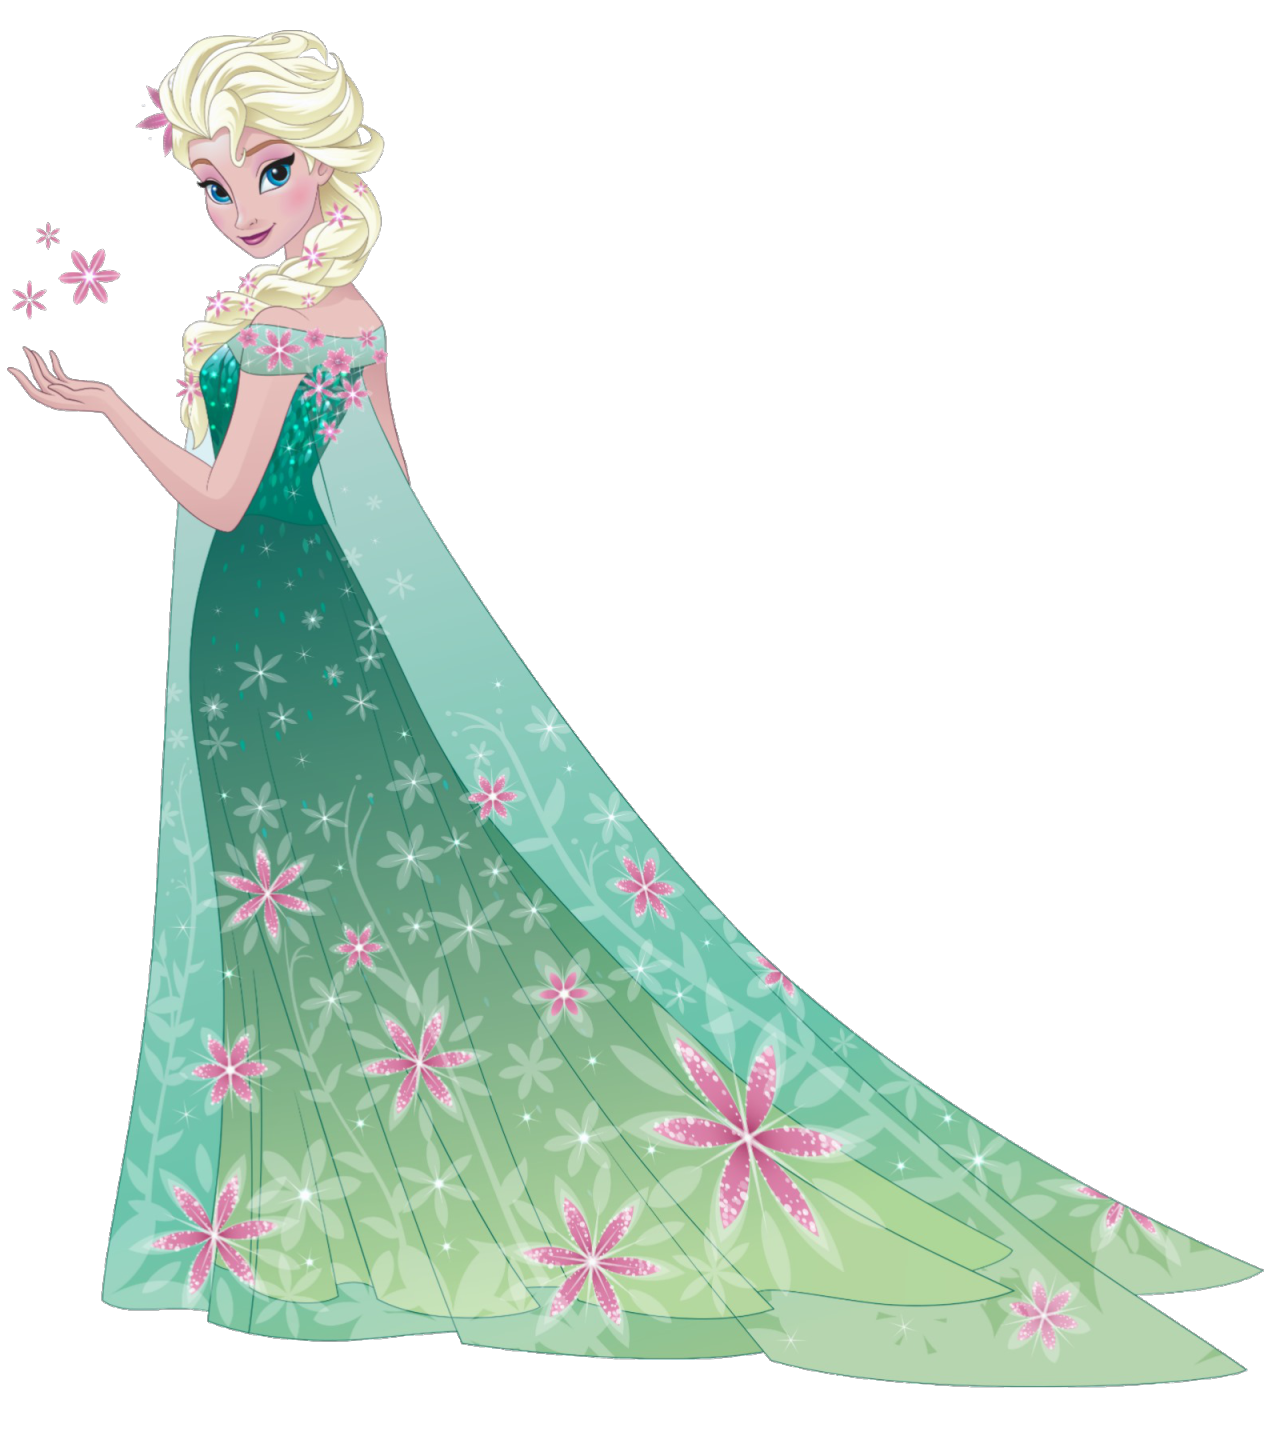 Number 6 clipart frozen disney, Number 6 frozen disney.